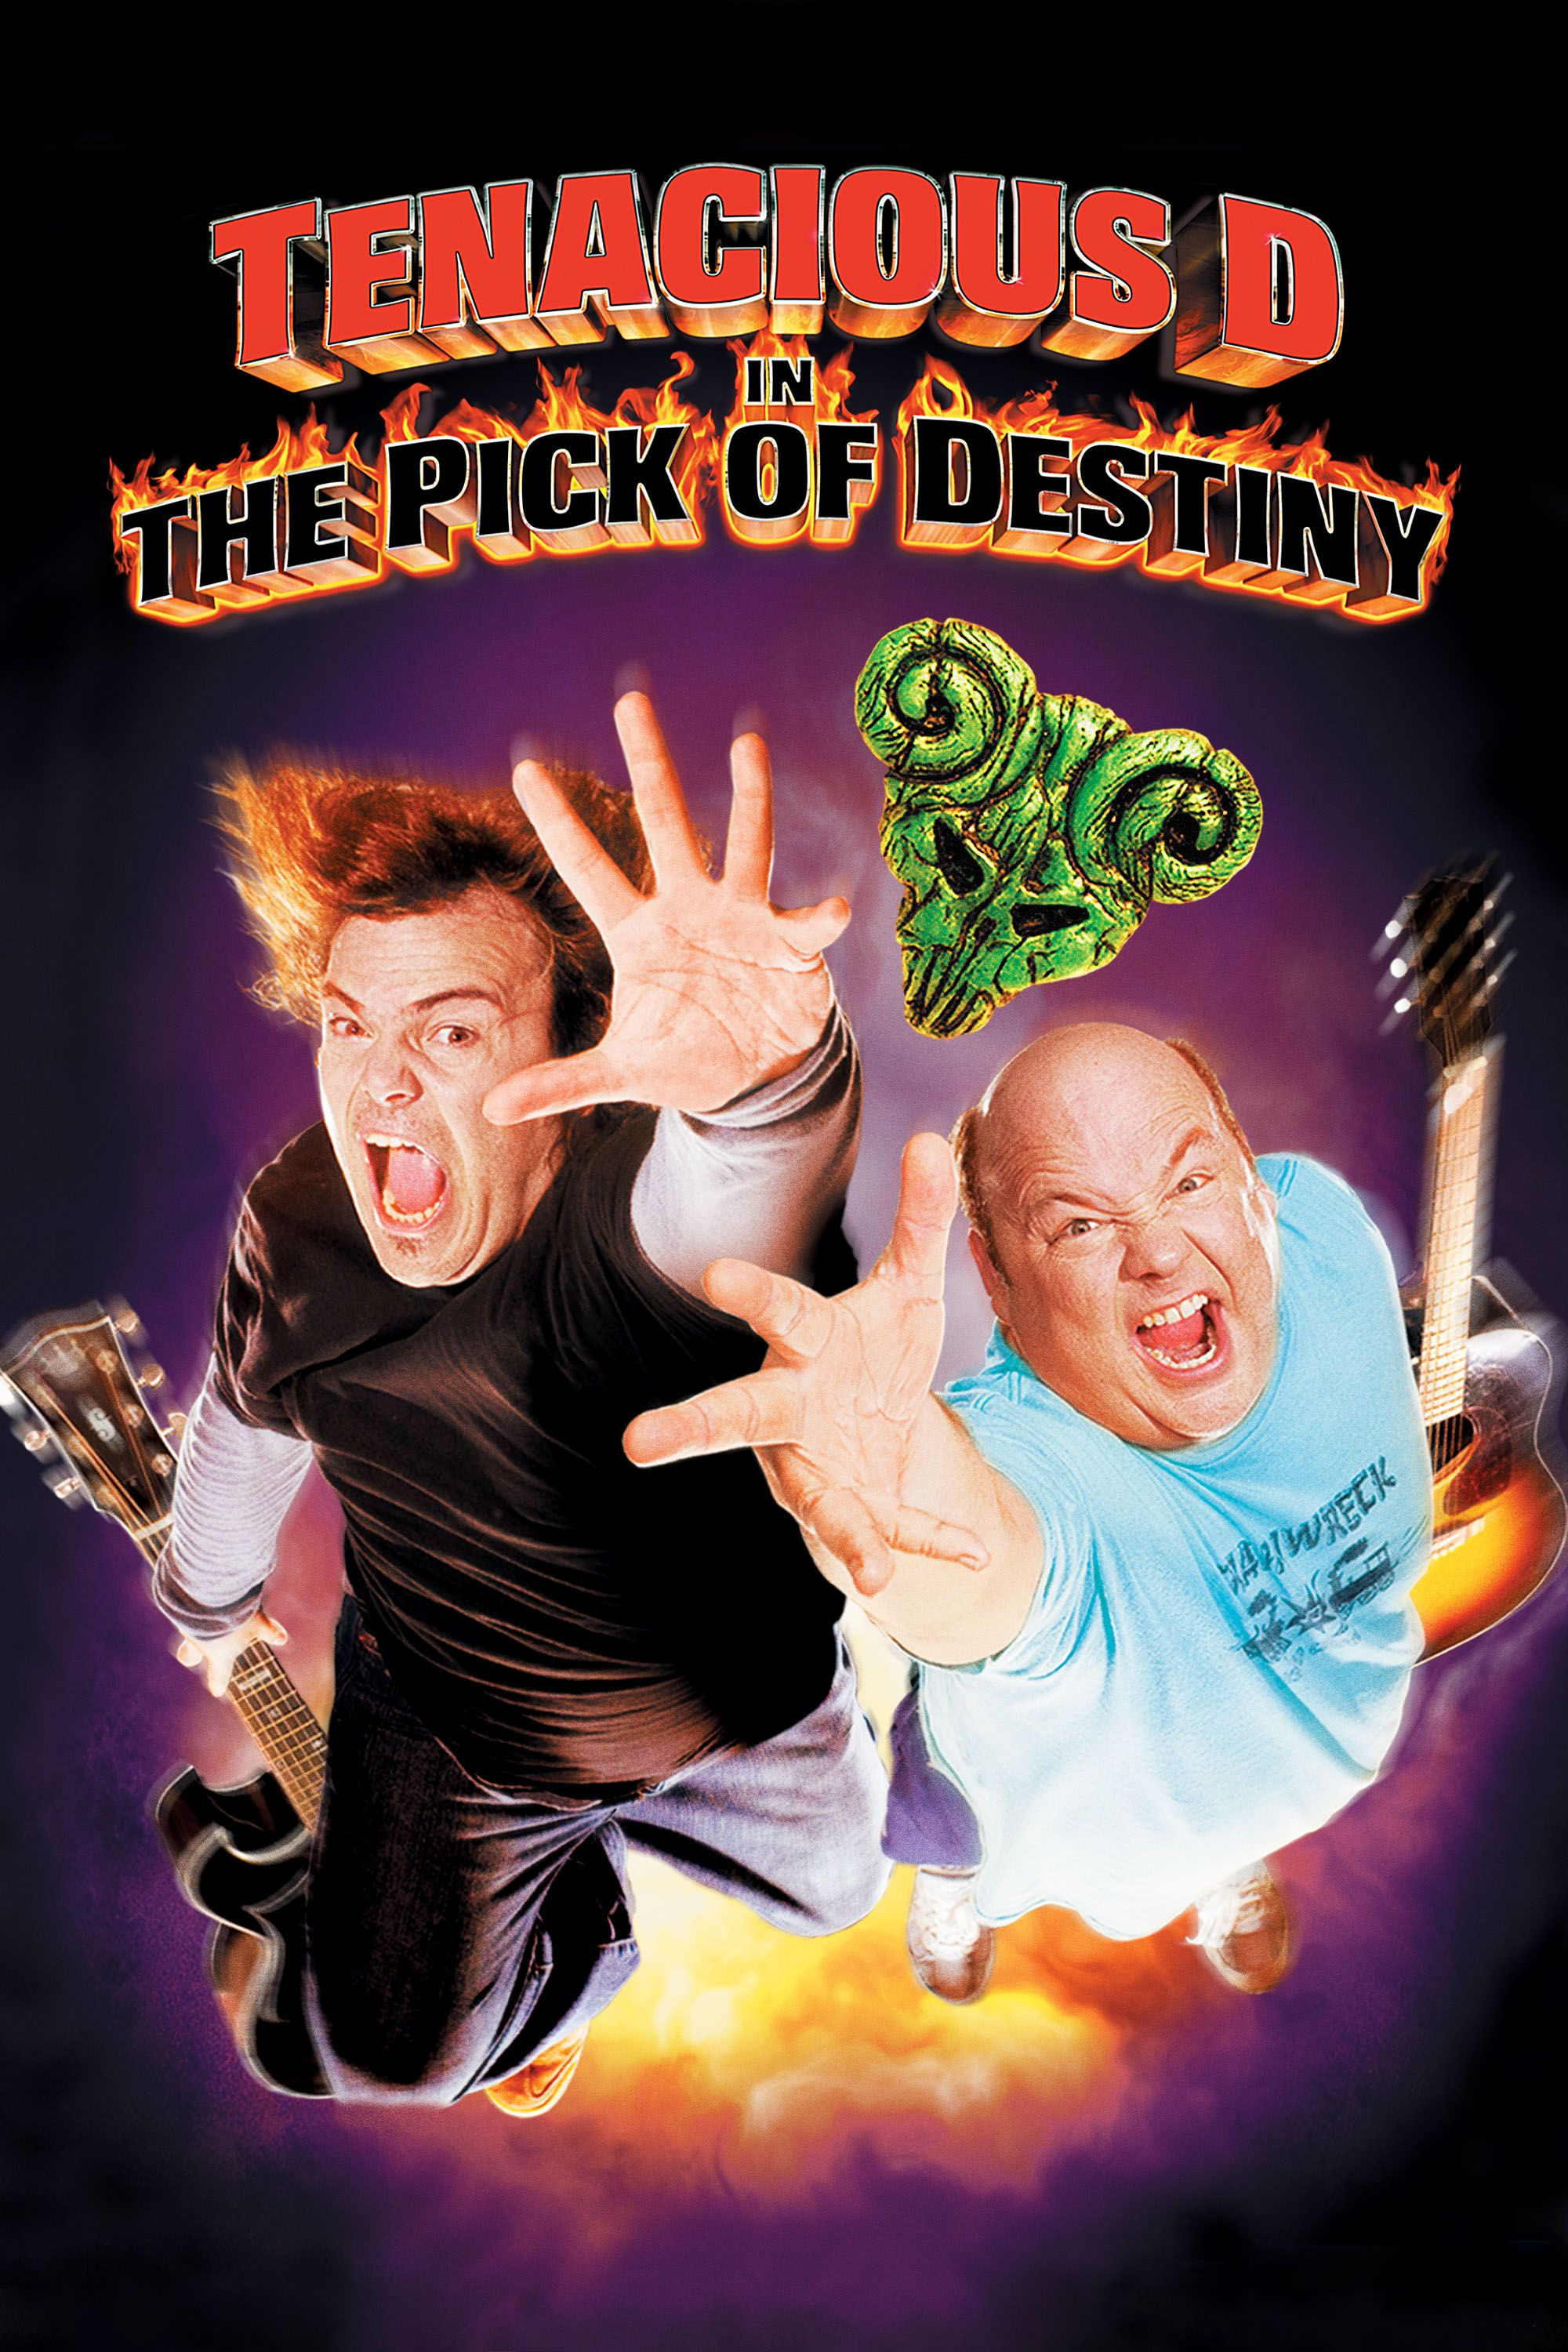 tenacious d the pick of destiny movie